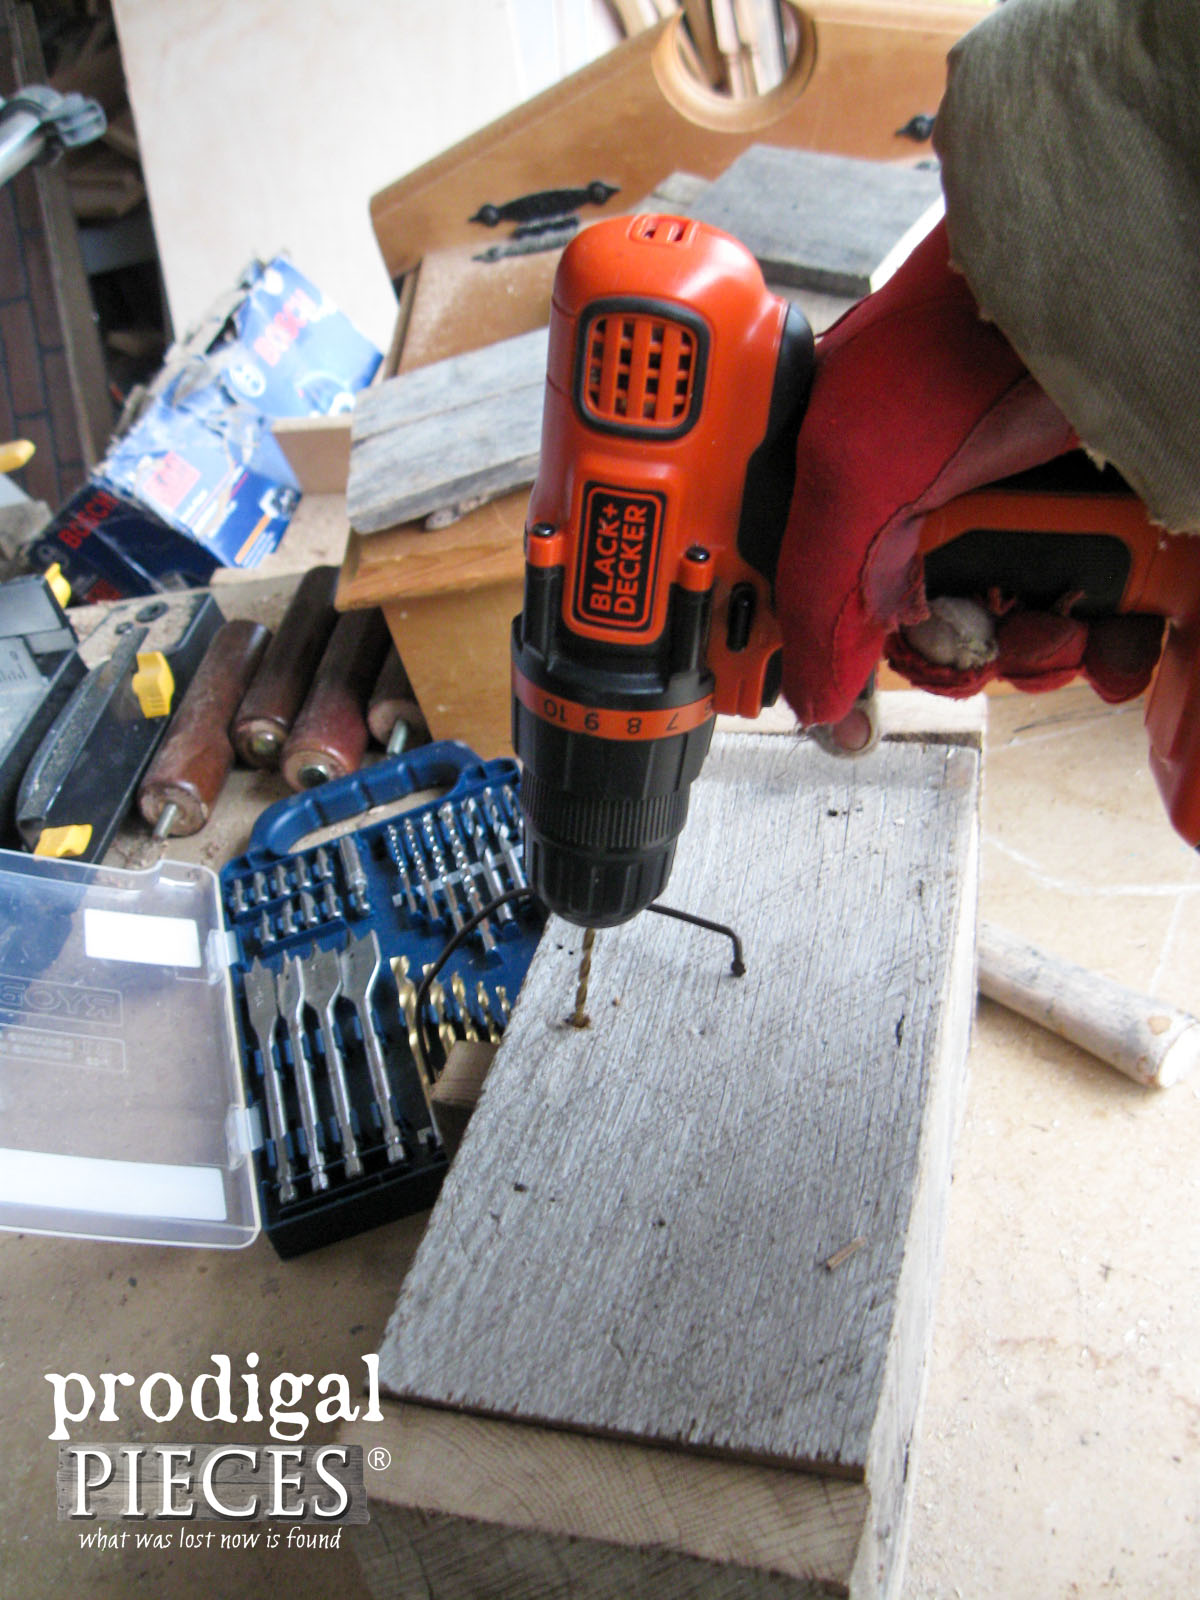 Drilling Wooden Caddy for Handles | Prodigal Pieces | www.prodigalpieces.com